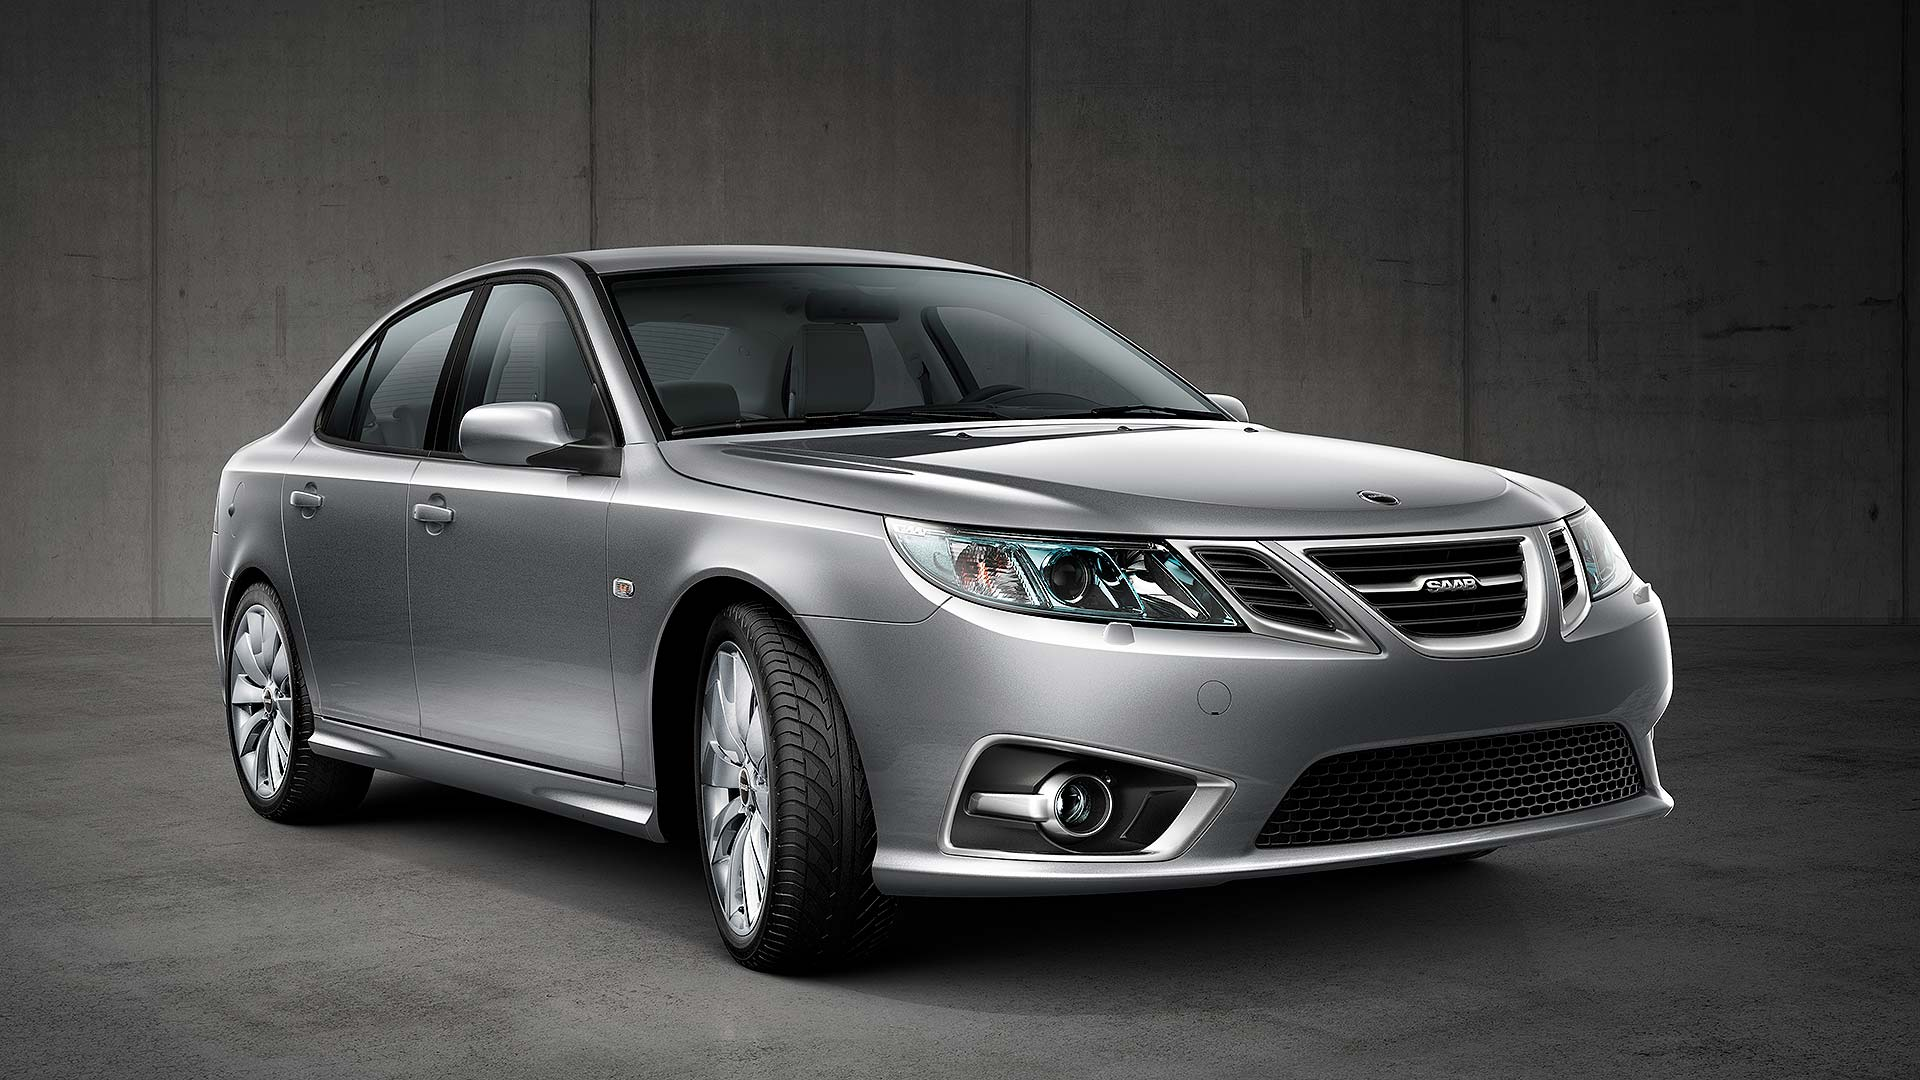 The final Saab ever made